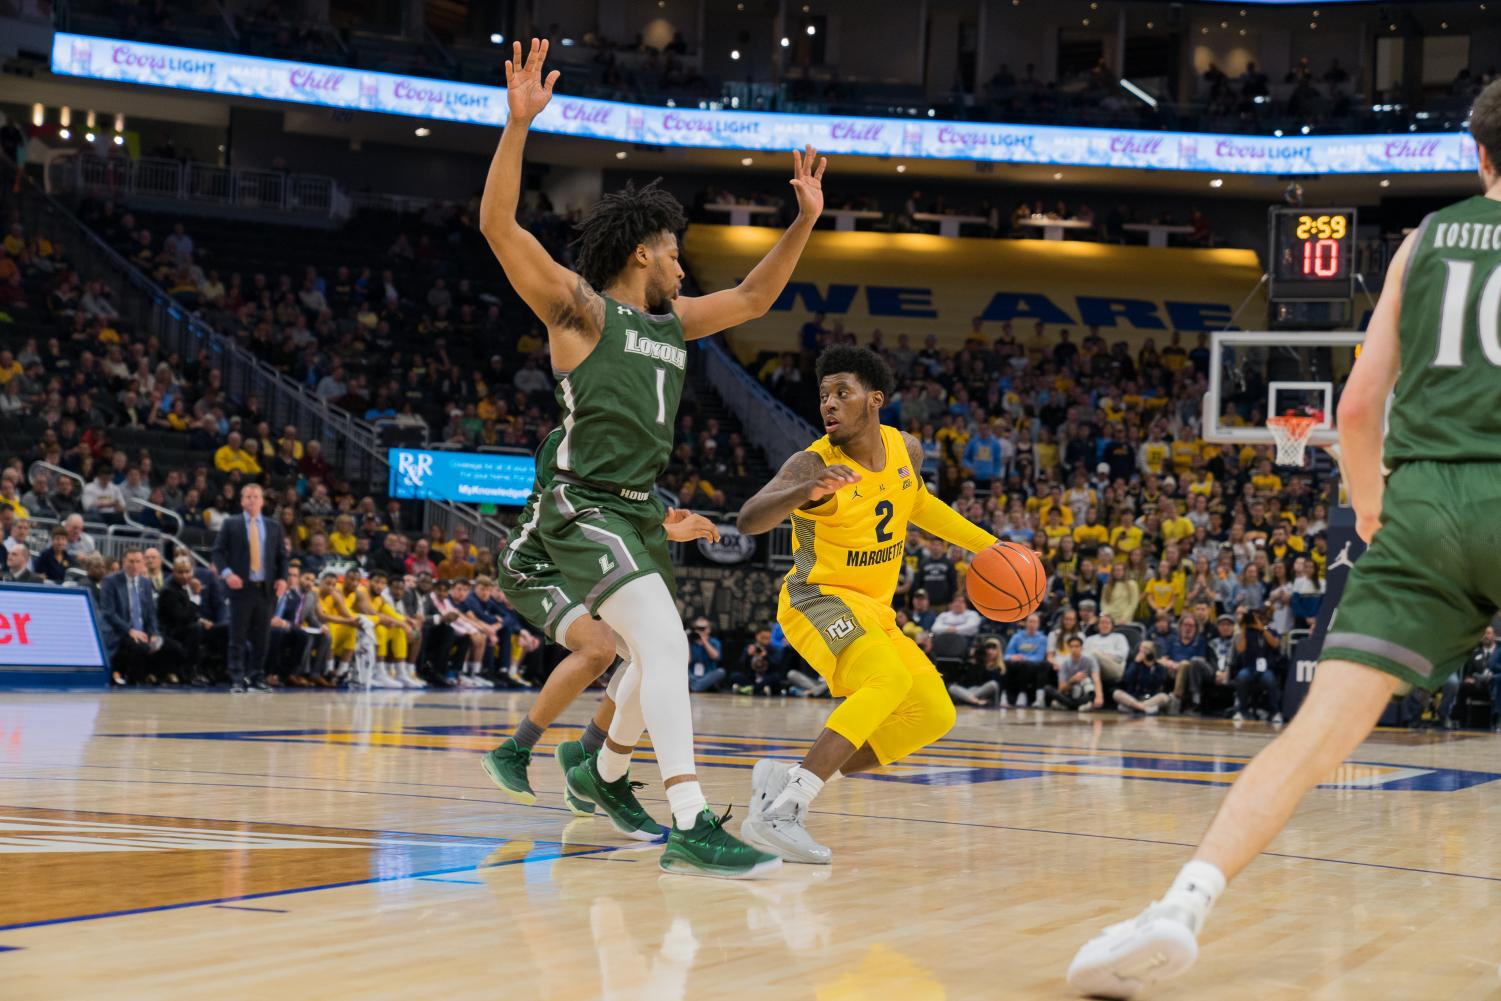 Sacar Anim works against the Loyola Maryland defense in Marquette's win at Fiserv Forum Nov. 5.